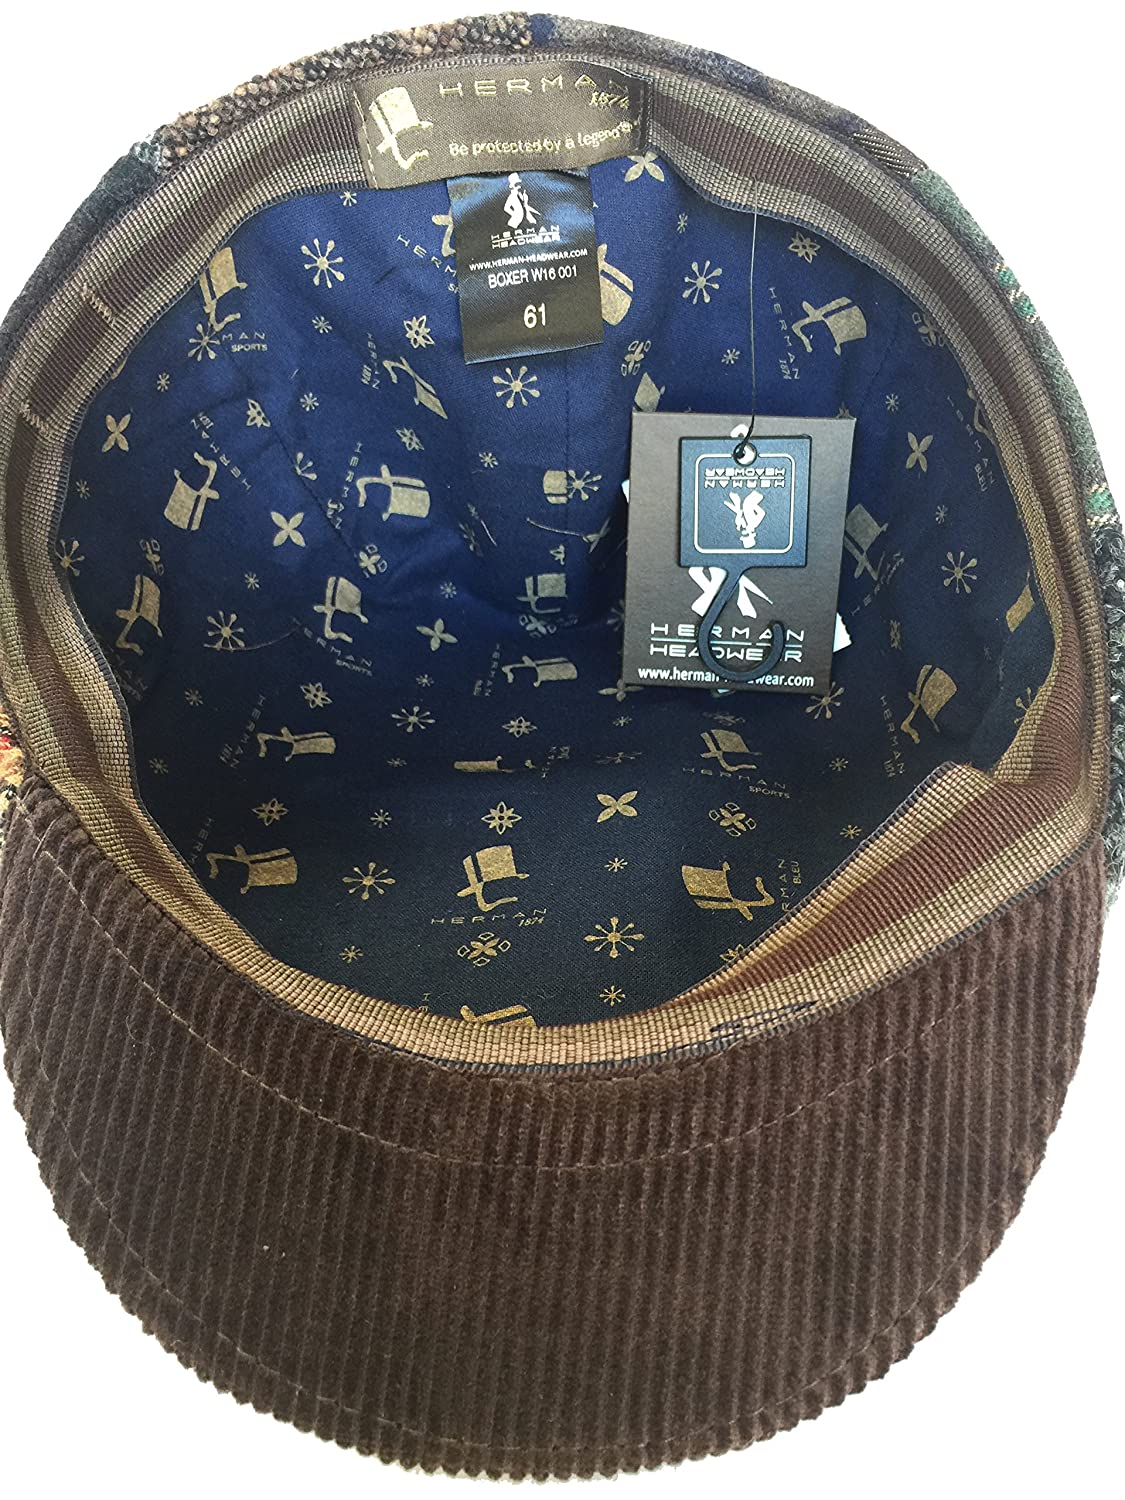 Herman Boxer Made in Italy Wool Patchwork Ivy Cap Molded Driver Hat Newsboy